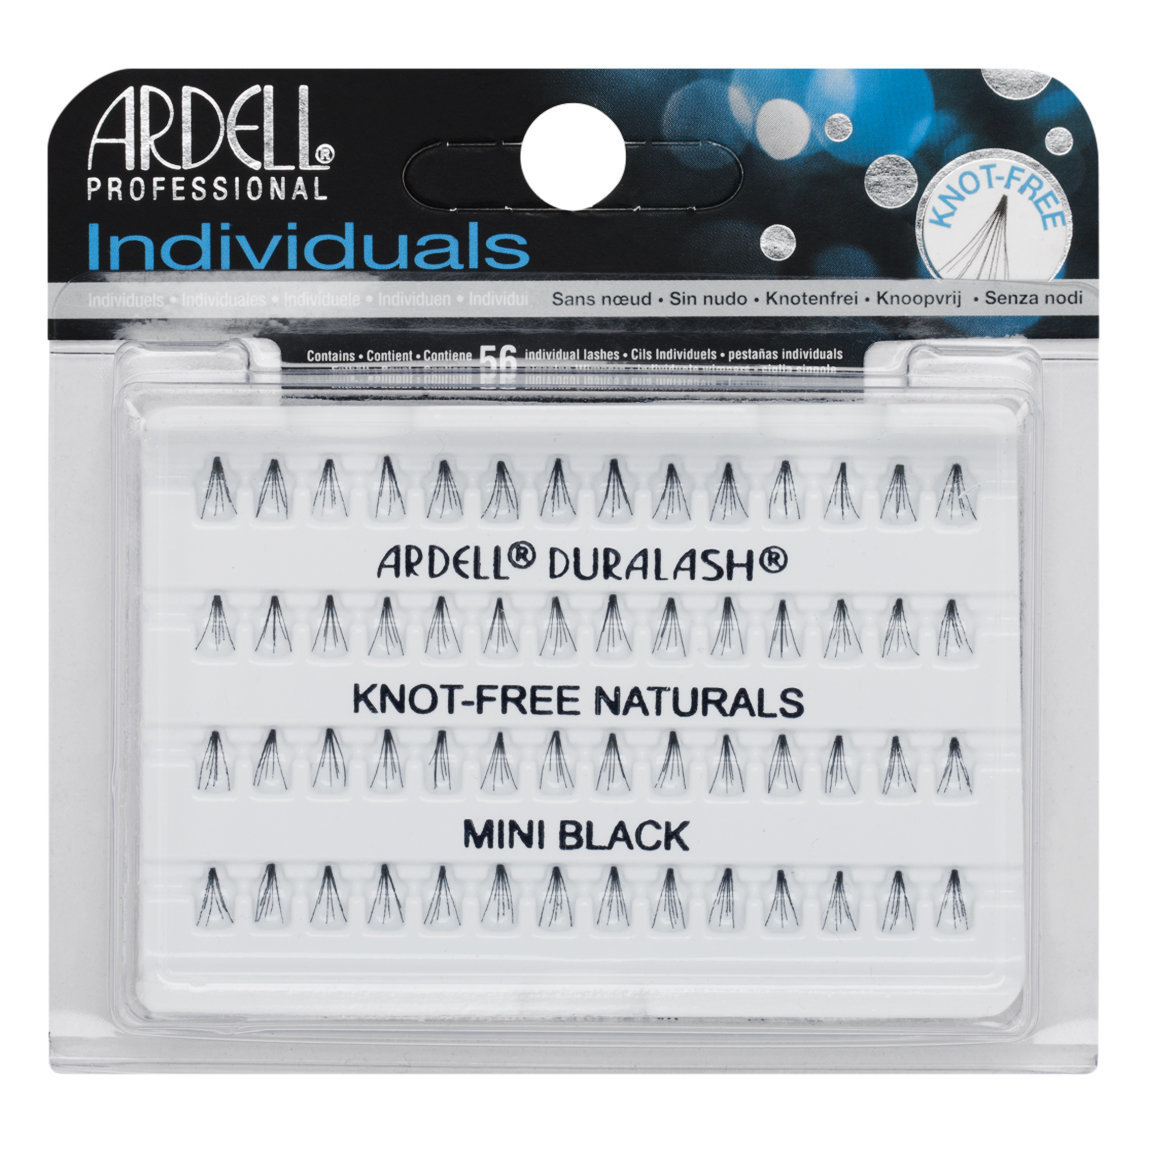 Ardell Individuals Knot-Free Natural Lashes Mini Black